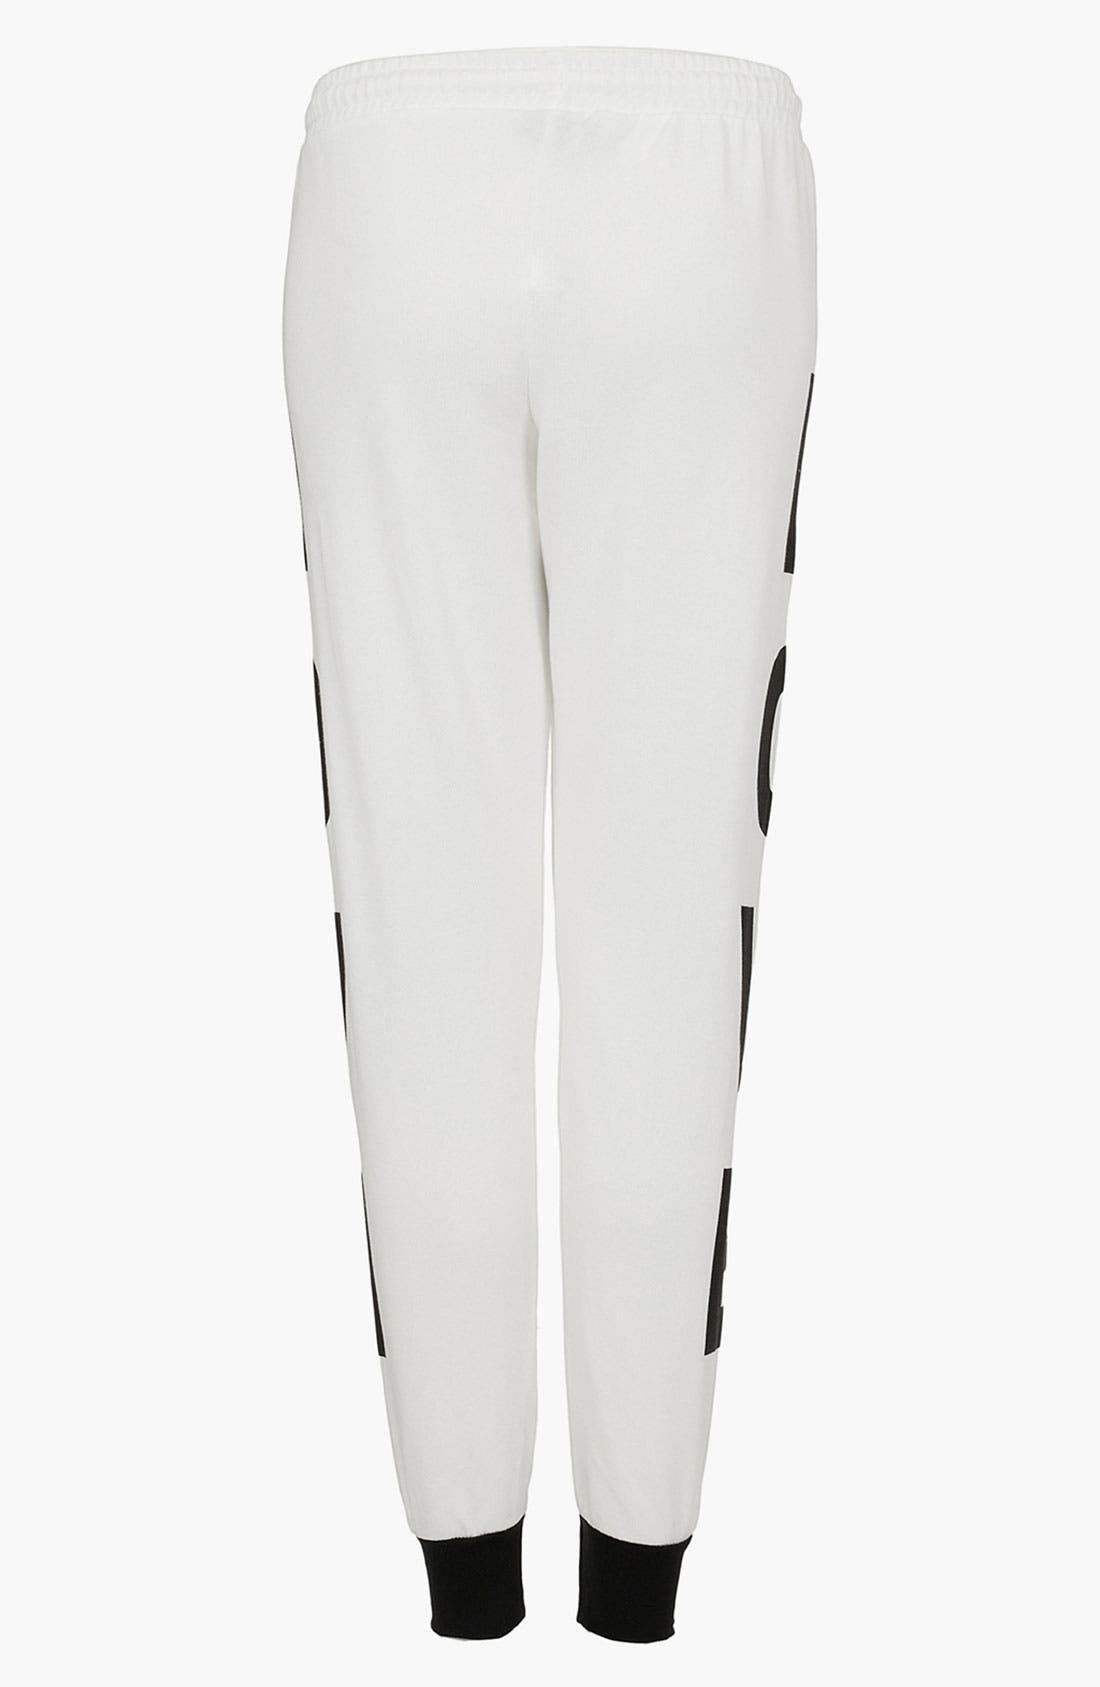 Alternate Image 2  - Topshop 'Love' Graphic Tapered Sweatpants